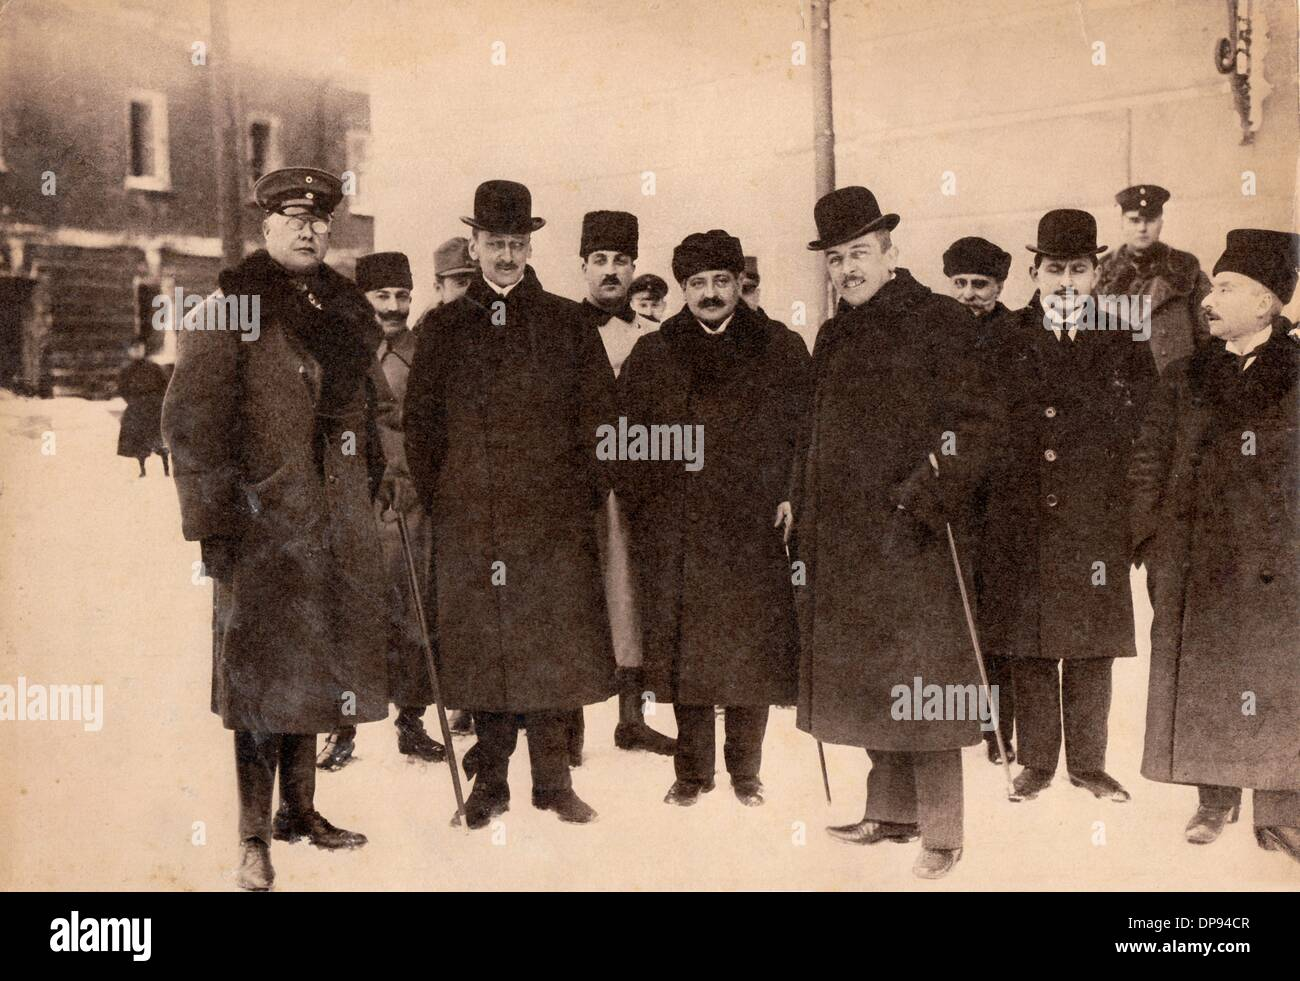 Members of the Central Powers during the peace negotiations of Brest-Litovsk with Soviet Russia and the Ukranian People's Republic: (l-r) German general Max Hoffmann, foreign minister of Austro-Hungary Count Ottokar von Czernin, Grand Vizier of the Ottoman Empire Talaat Pasha and the State Secretary of the State Department of th German Empire Richard von Kühlmann. Date unknown. During the peace negotiations, an exclusive protectorate treaty of the Central Powers with the Ukranian People's Republic was signed on 9 February 1918. The negotiations ended with the signing of the peace treaty of Br - Stock Image